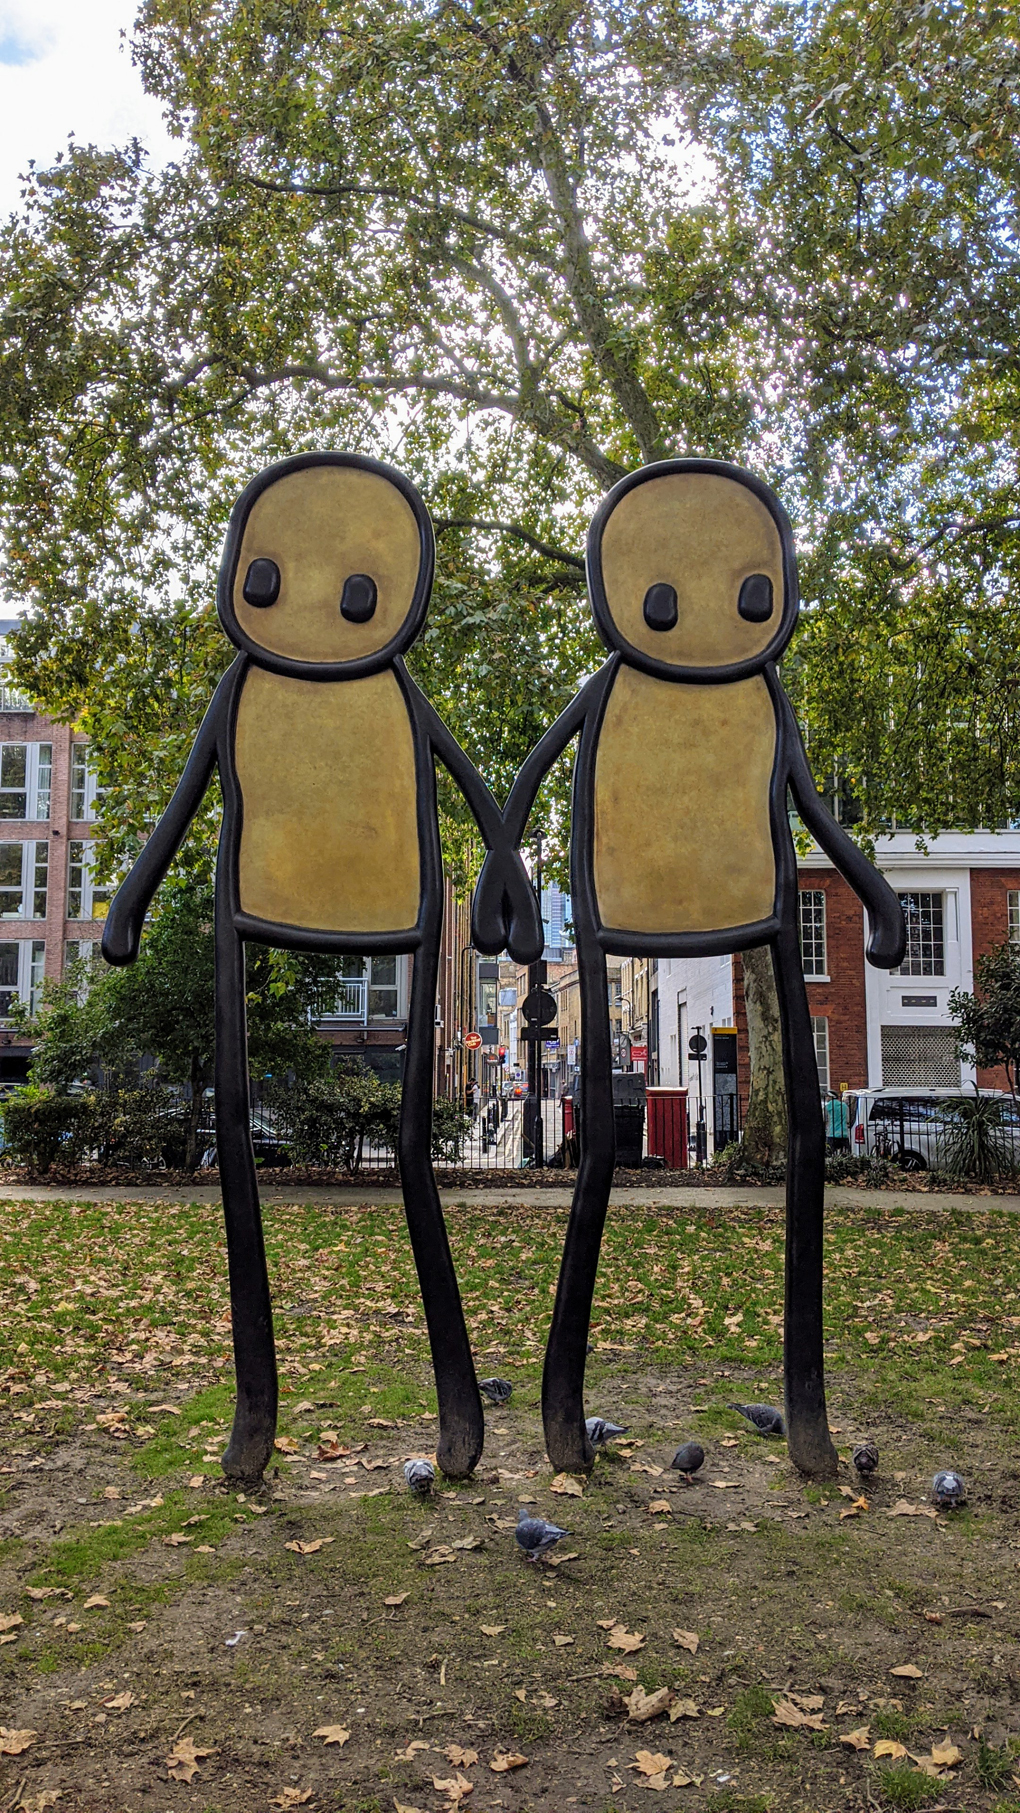 A tall sculpture of two stick figures holding hands.